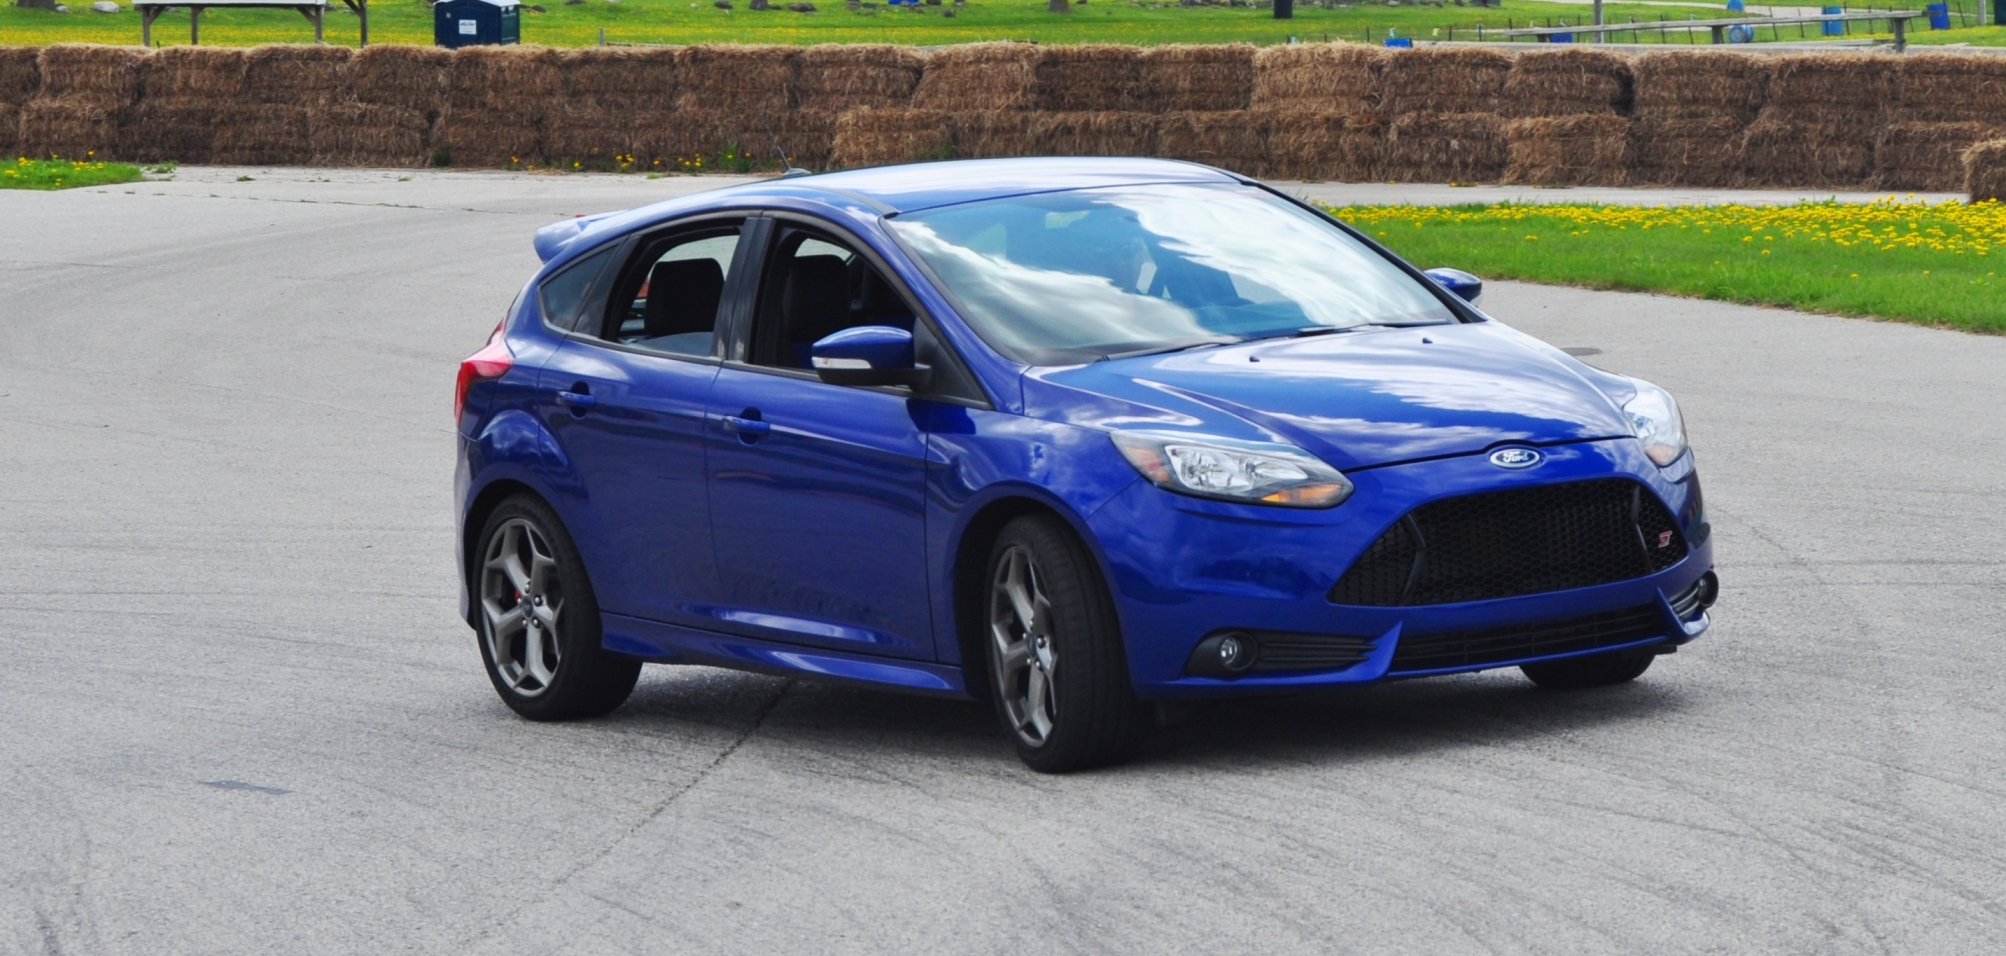 2014 ford focus st is most ferocious car on autocross. Black Bedroom Furniture Sets. Home Design Ideas